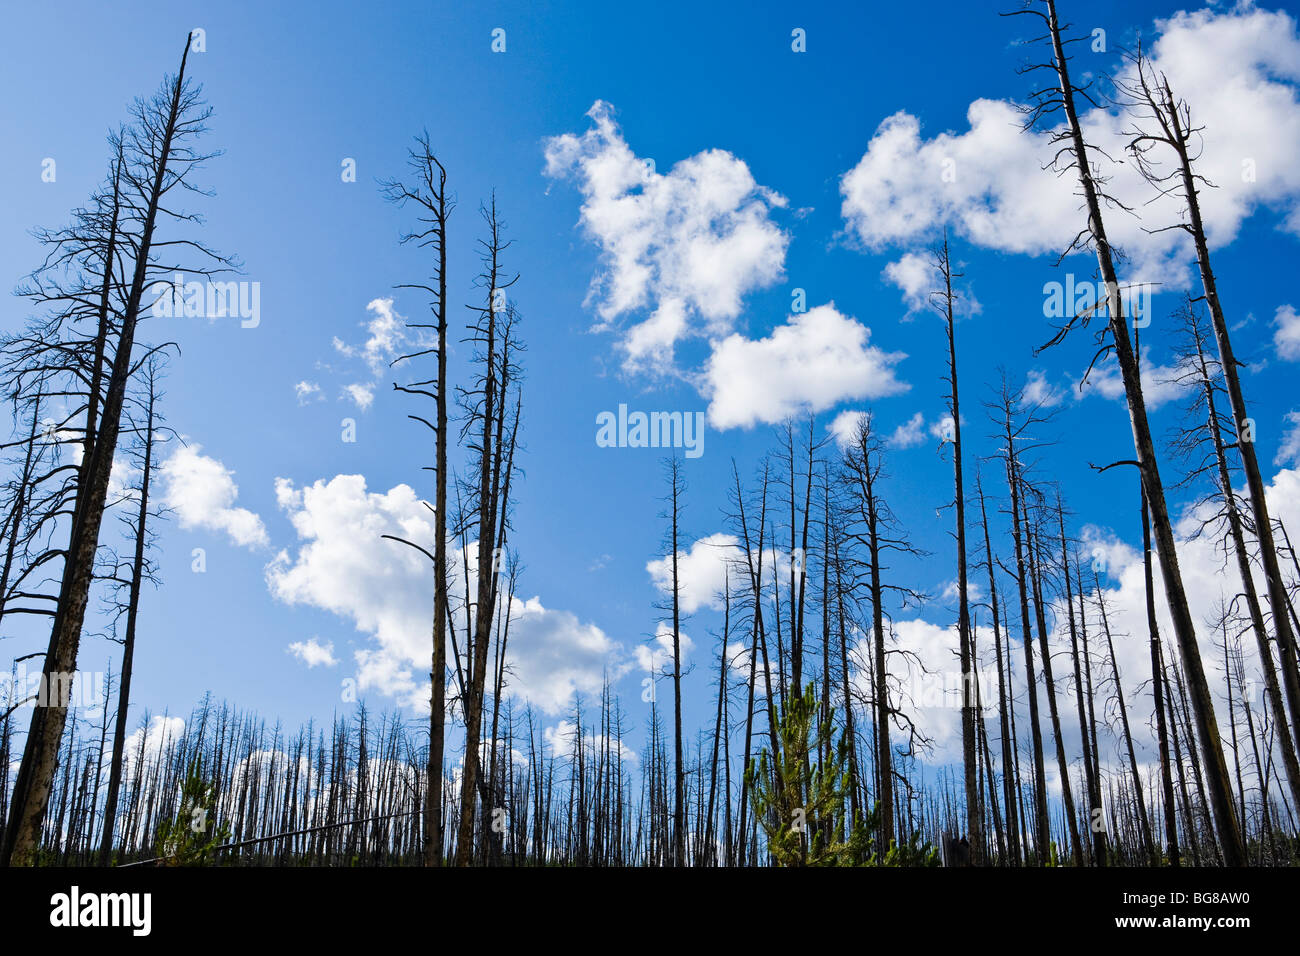 Scorched trees and new growth after a forest fire in Yellowstone National Park, Wyoming, USA. - Stock Image